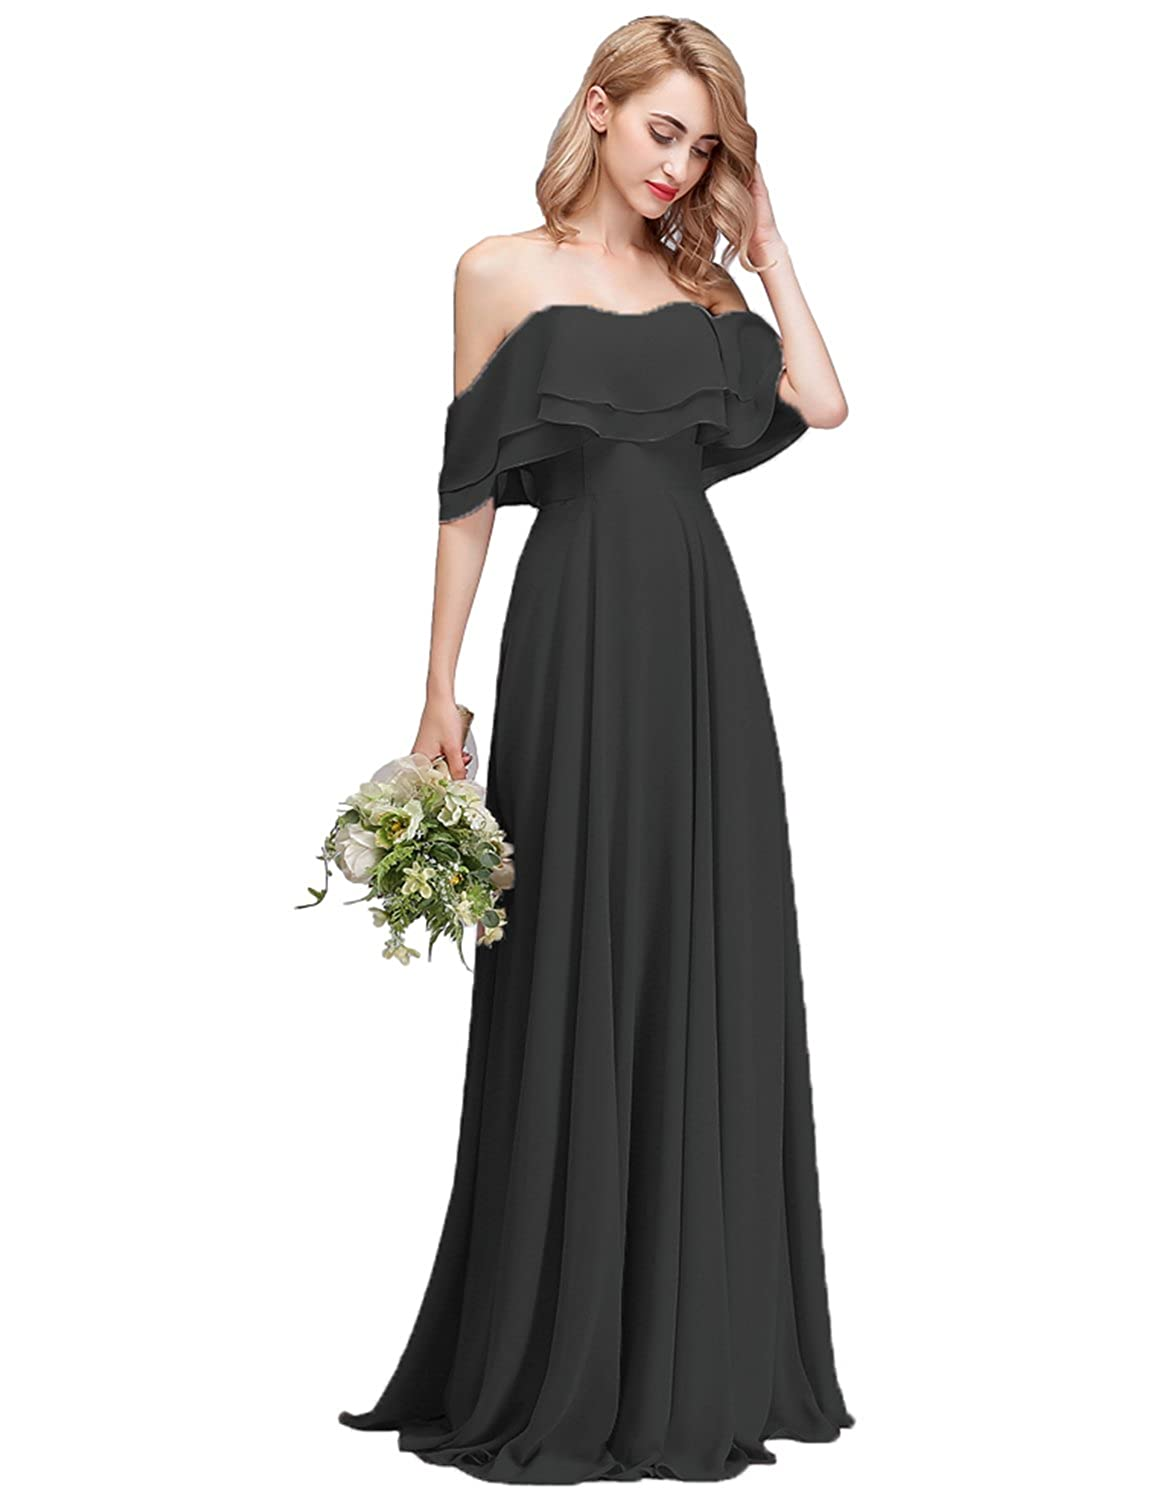 871456bc CLOTHKNOW Strapless Chiffon Bridesmaid Dresses Long with Shoulder Ruffles  for Women Girls to Wedding Party Gowns at Amazon Women's Clothing store: